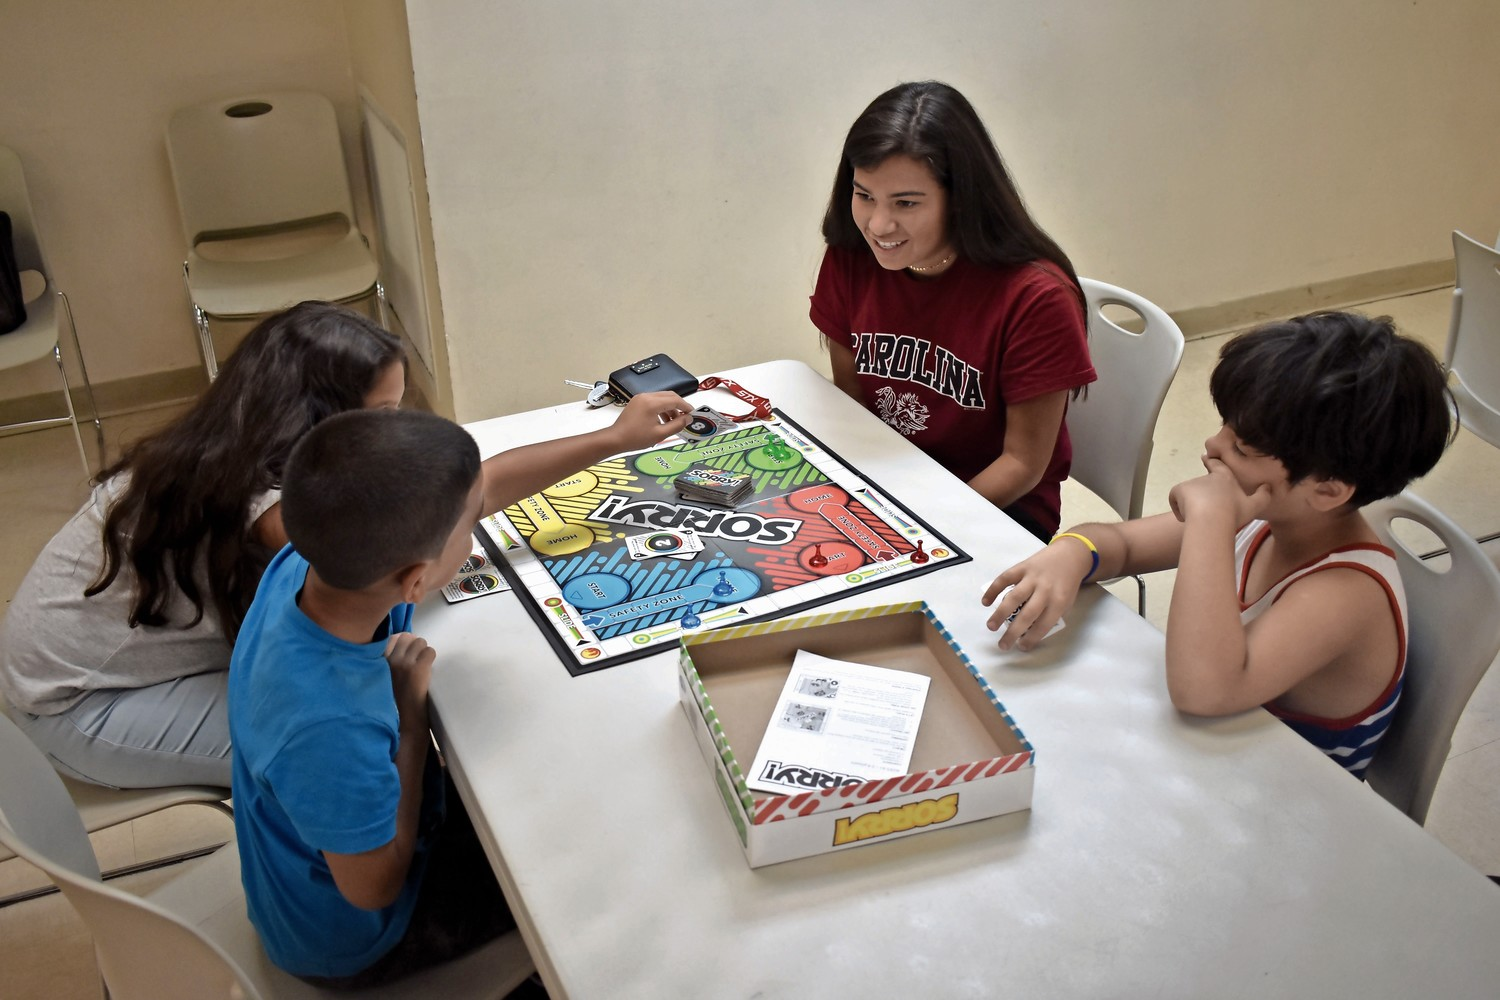 Tutor Molly Farina, clockwise from top, 17, played a board game with Leo Almonte-Baez, 8, Erik Duran, 6, and Ciara Borrero, 11.